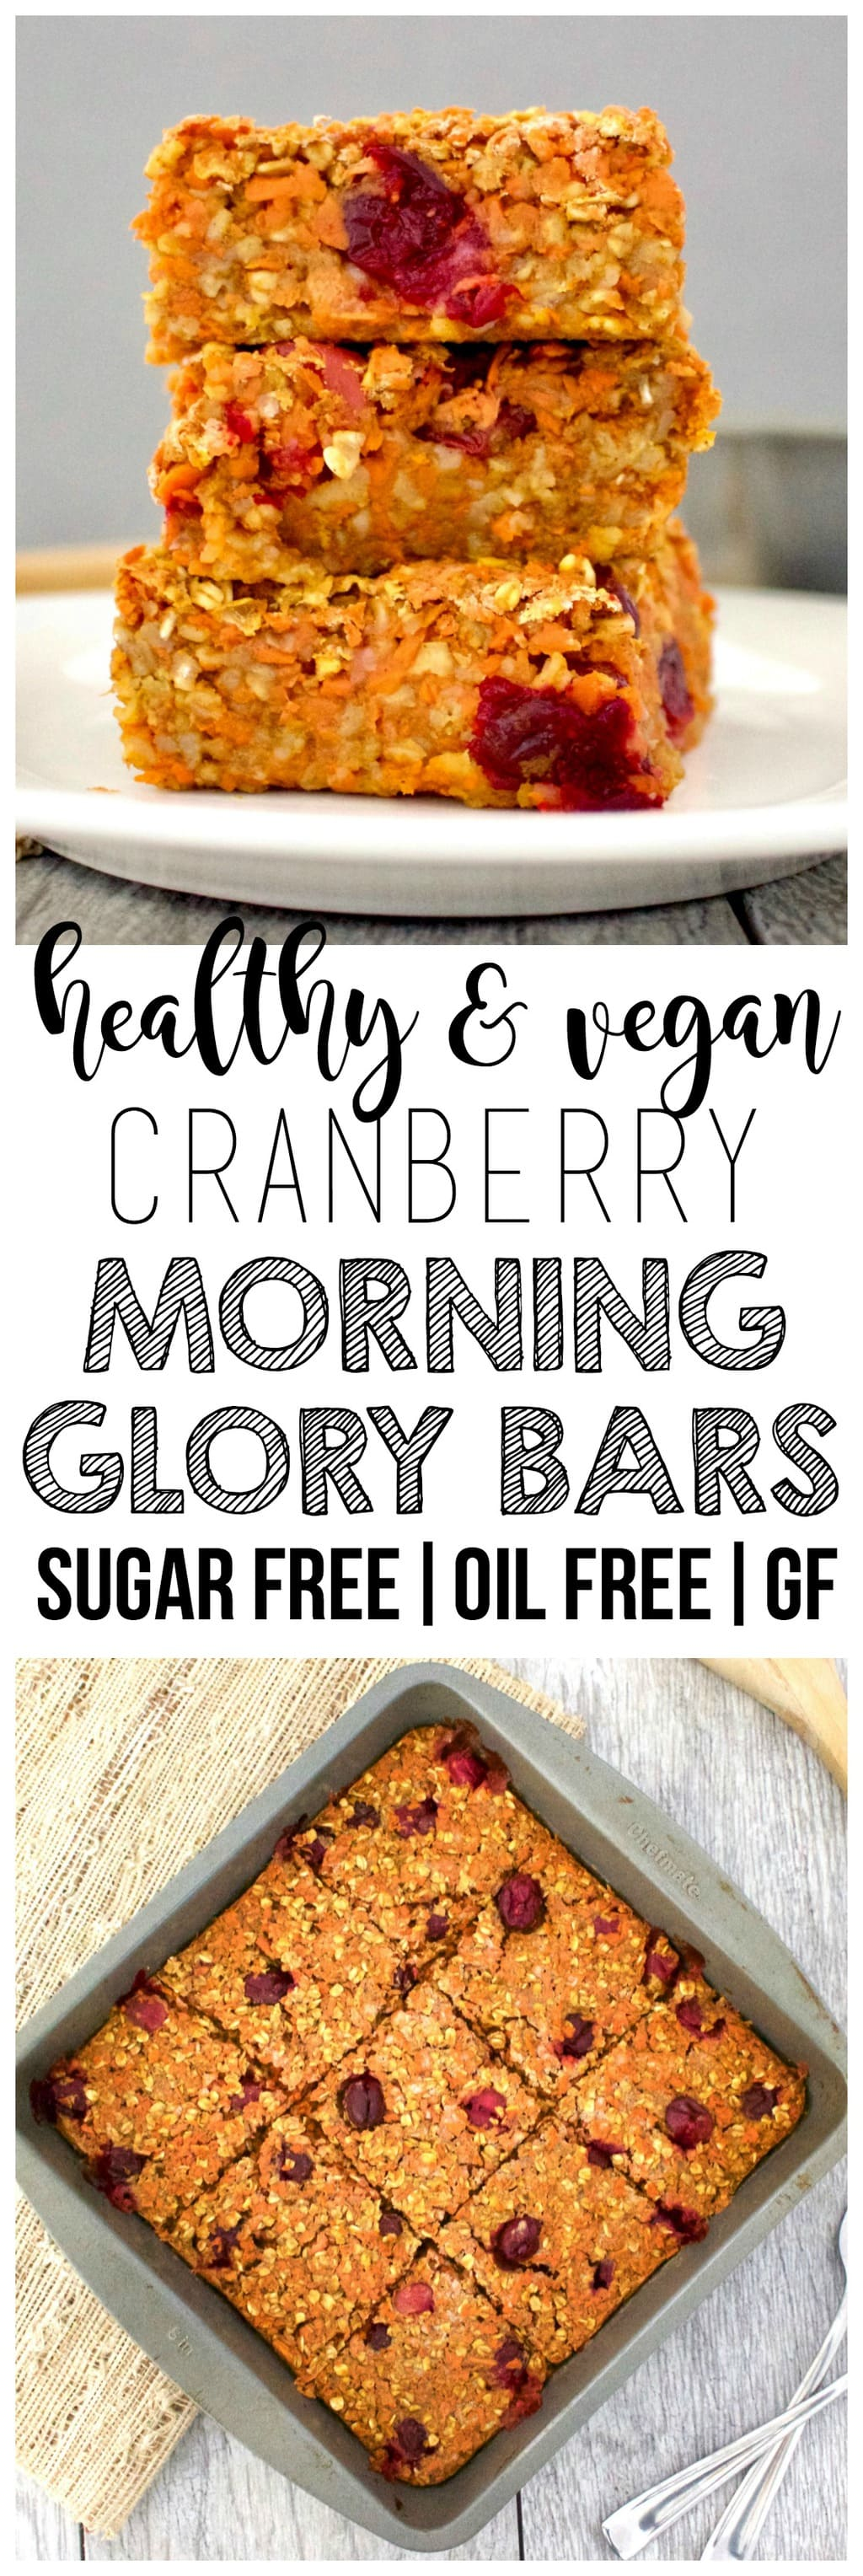 These AMAZING Cranberry Morning Glory Bars are loaded with sweet cinnamon flavor and are super delicious & healthy for you! They are vegan, gluten-free, sugar-free, low-fat, oil-free, and low-calorie - only 79 calories each!